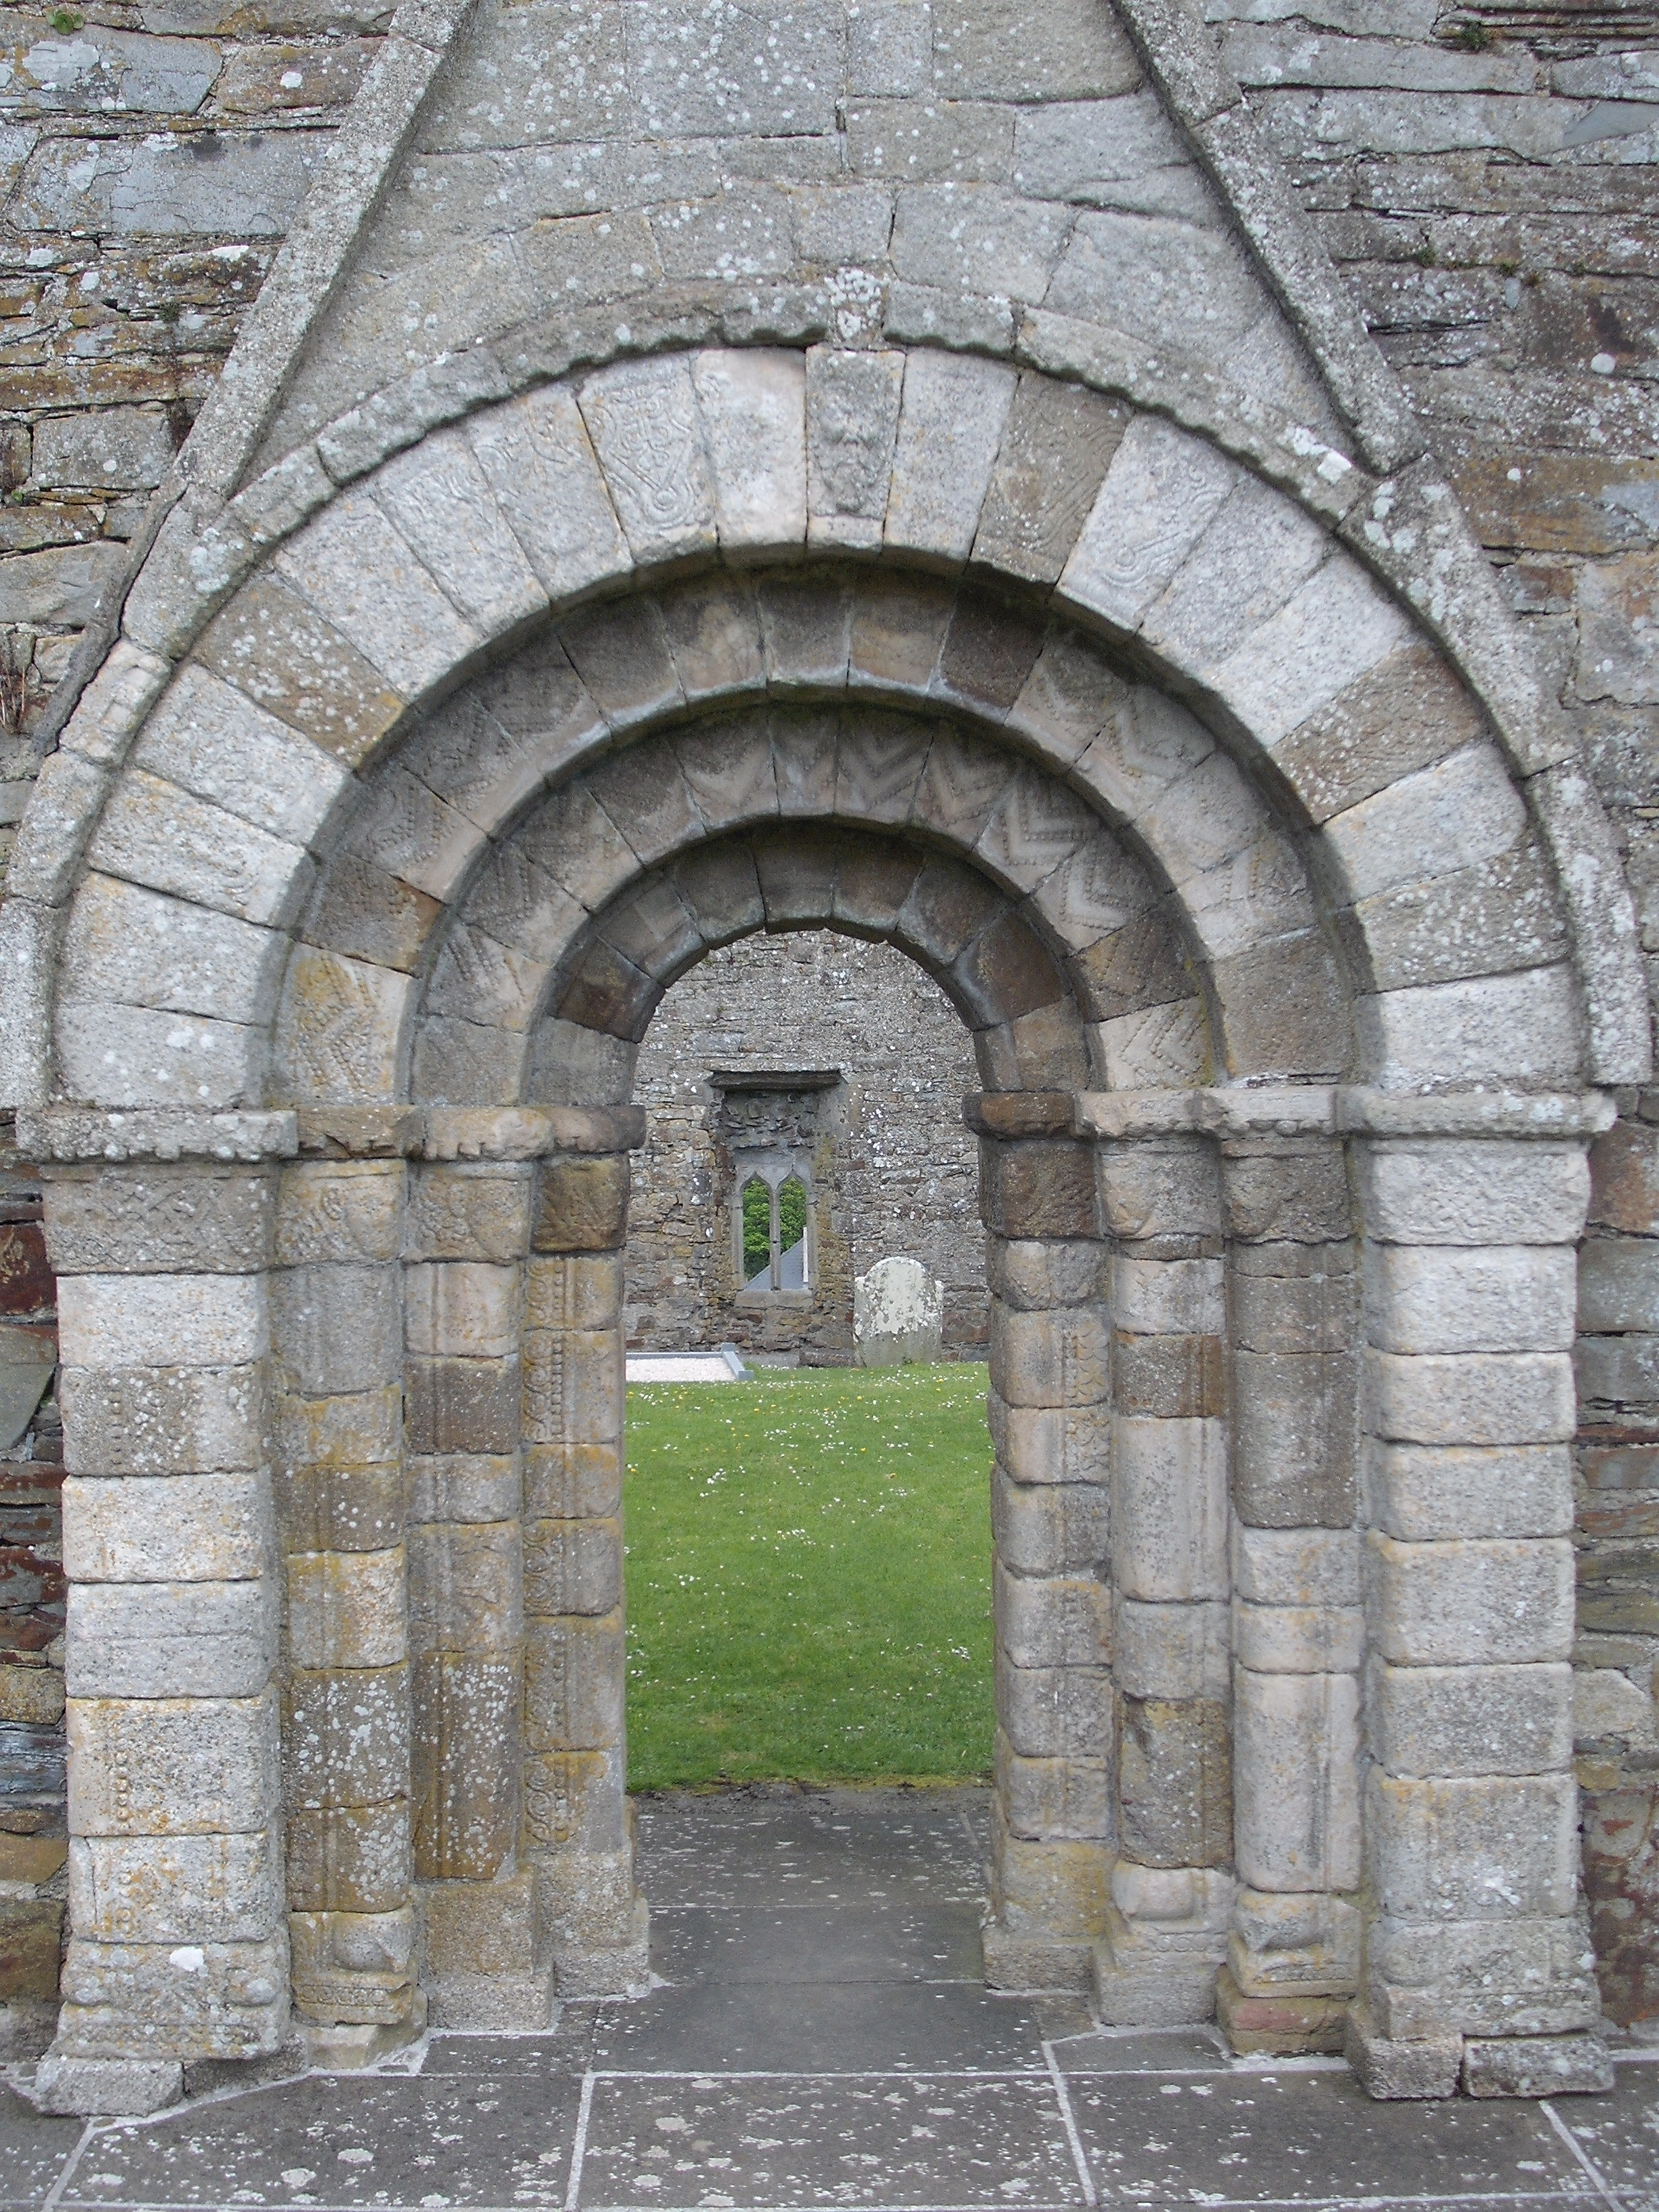 The Killeshin Hiberno-Romanesque Doorway with sketch from Leask 1925